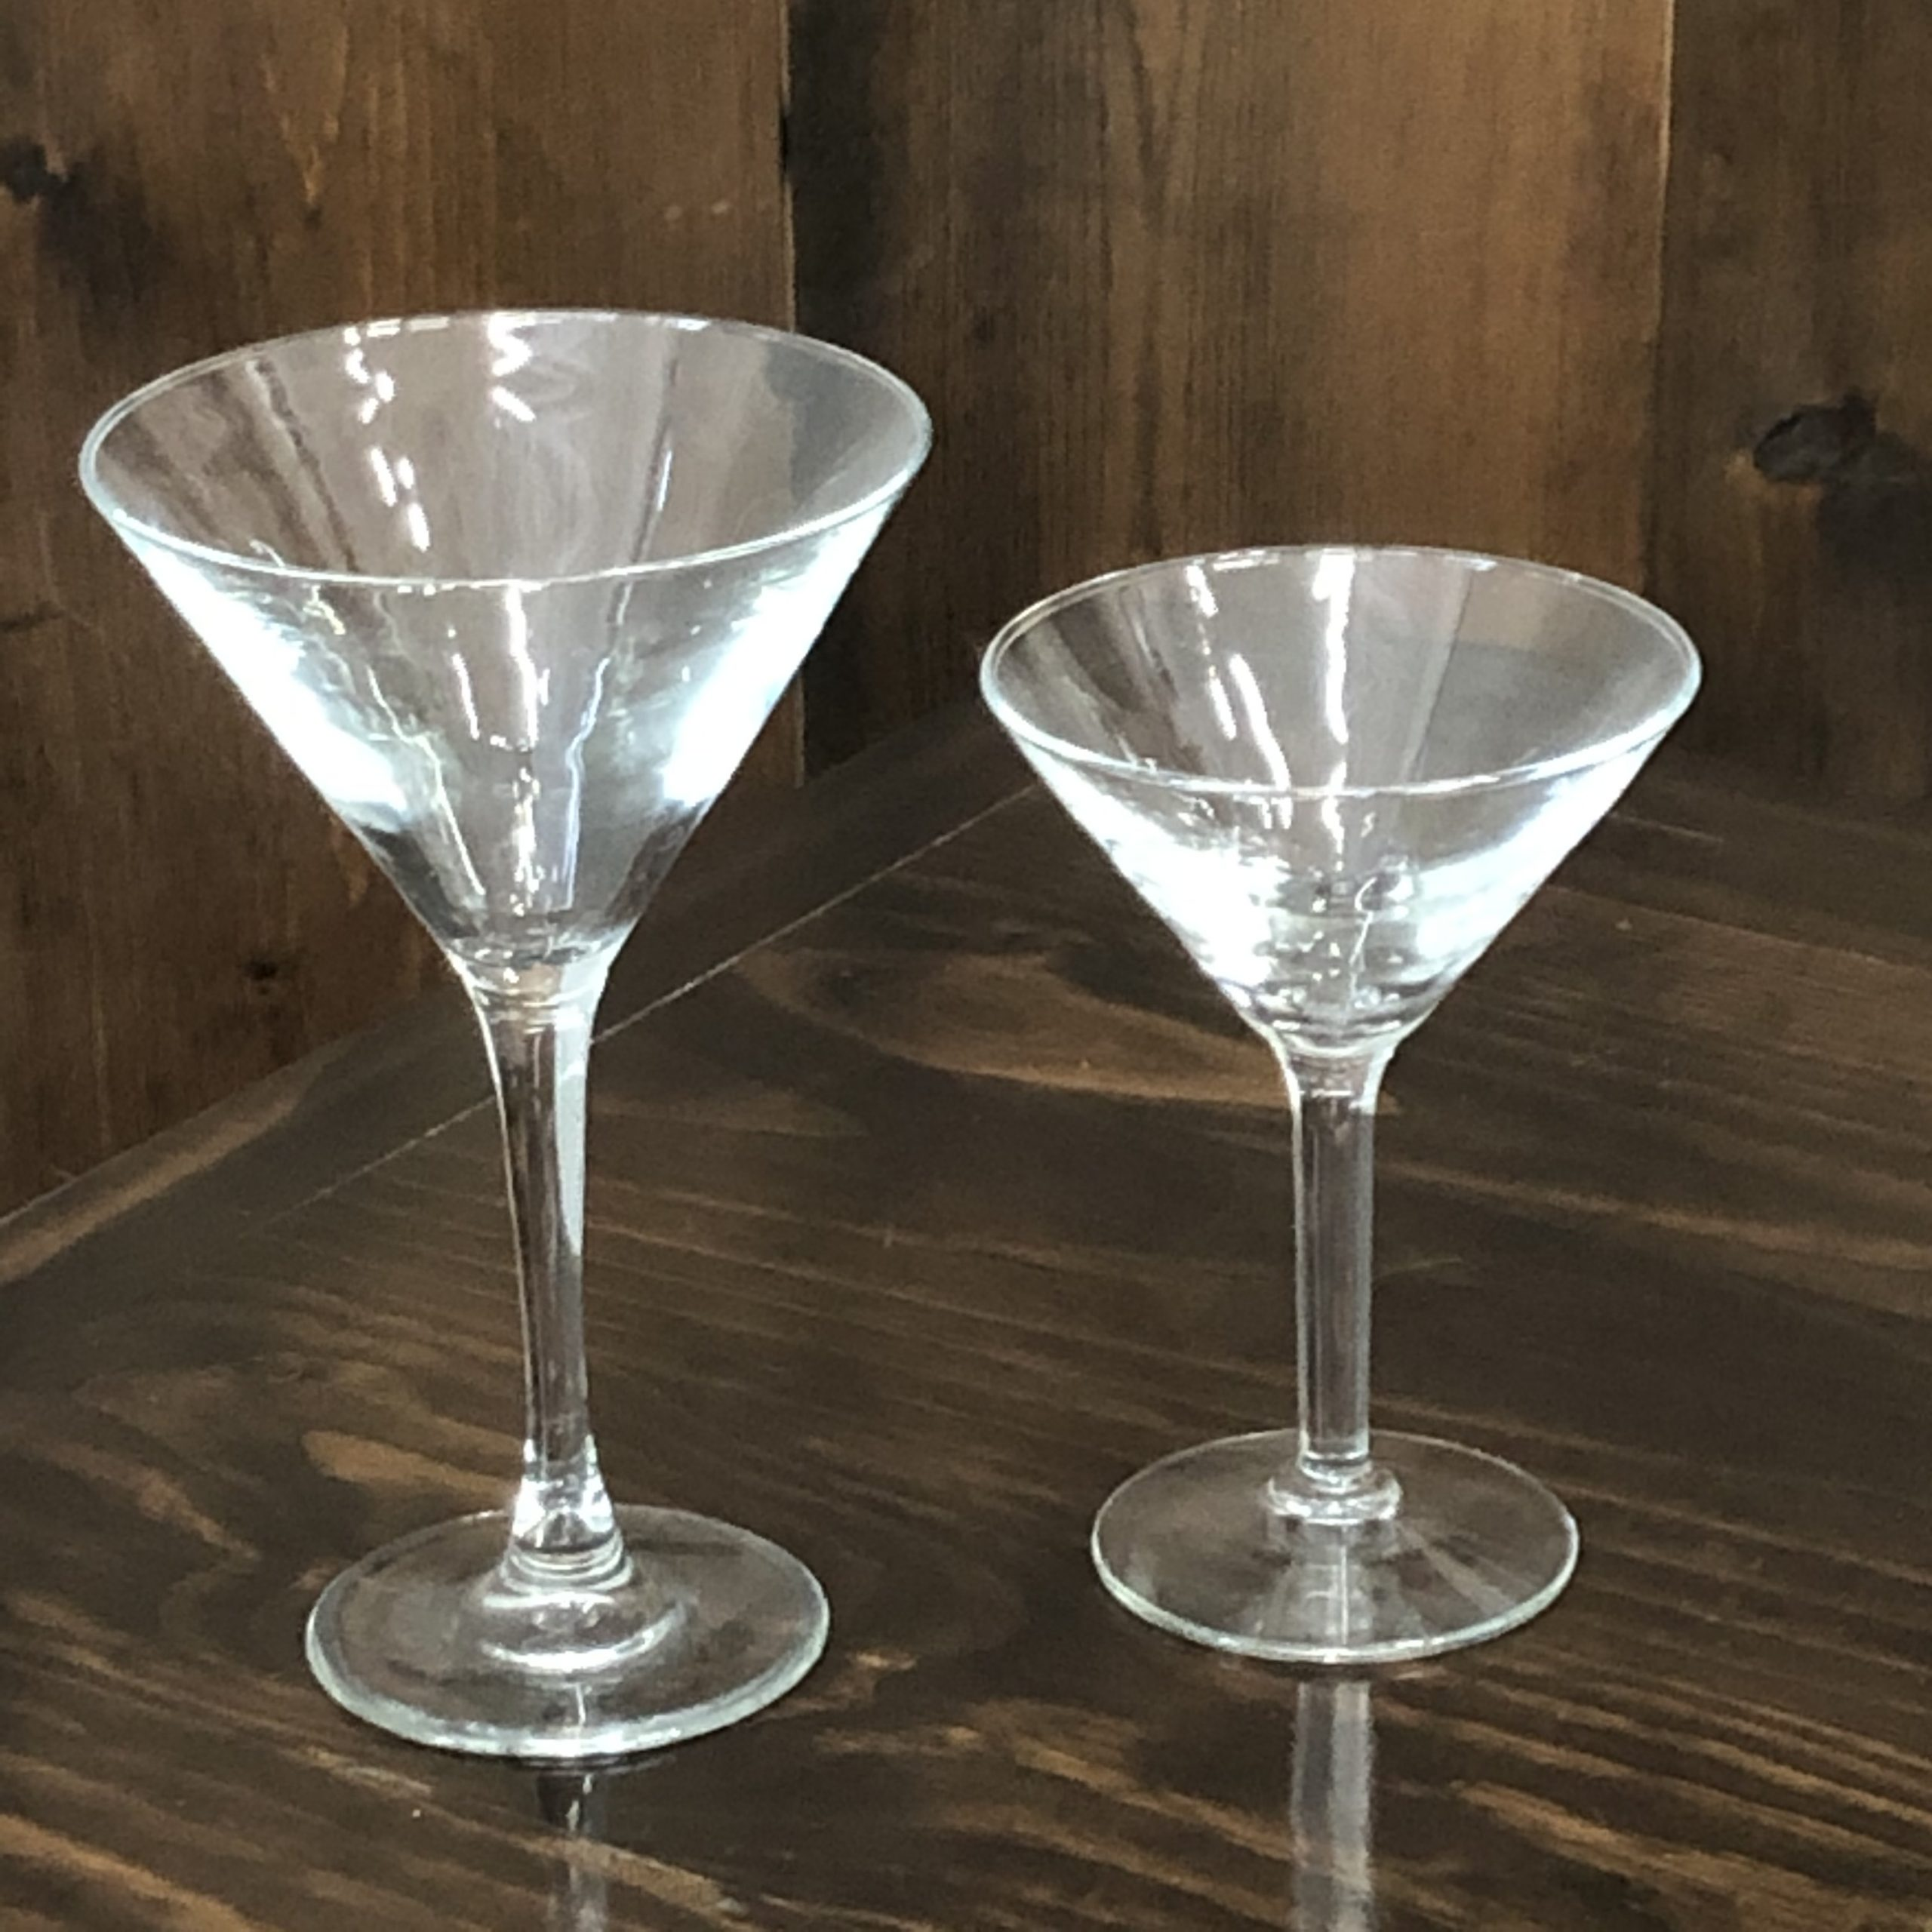 Martini Glasses Image